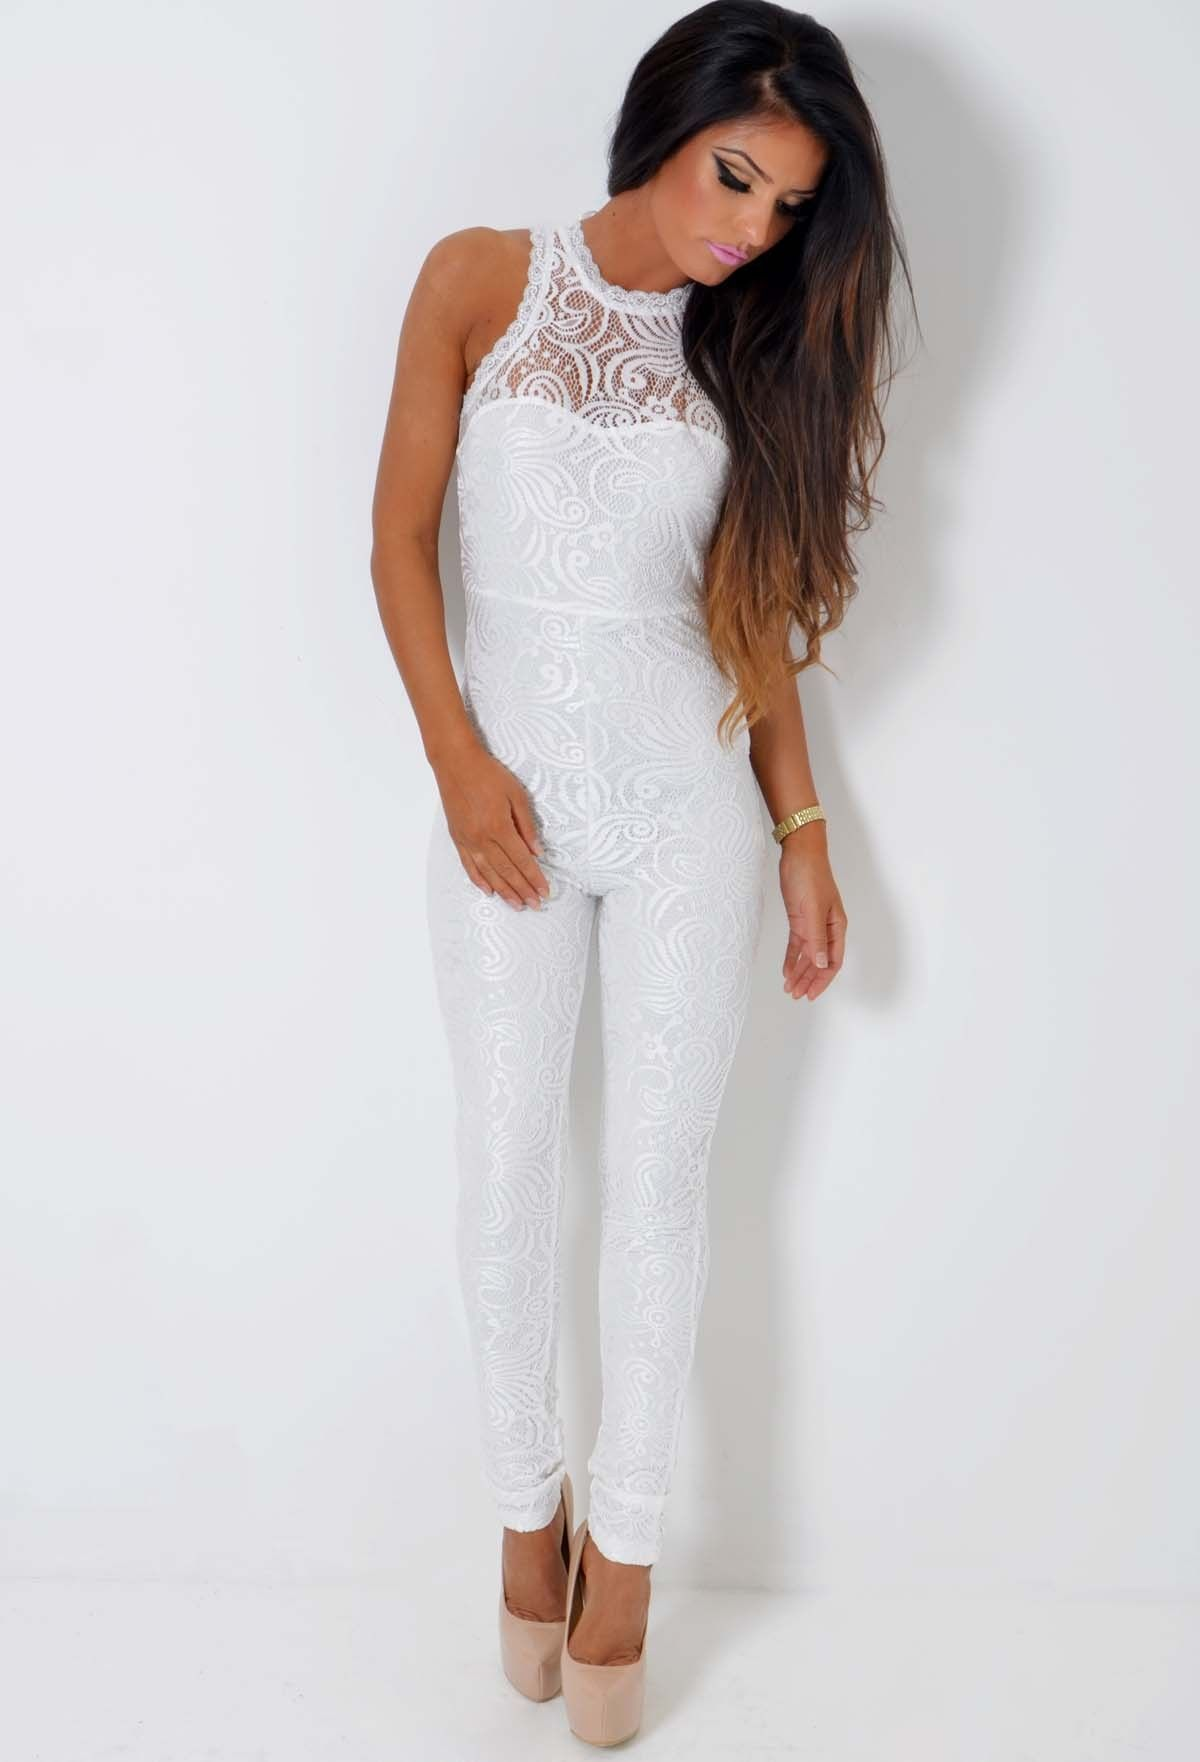 bdfe71df5d8 Shop now www.pinkboutique.co.uk clothing playsuits-and-jumpsuits baroness- white-lace-bodycon-jumpsuit.html